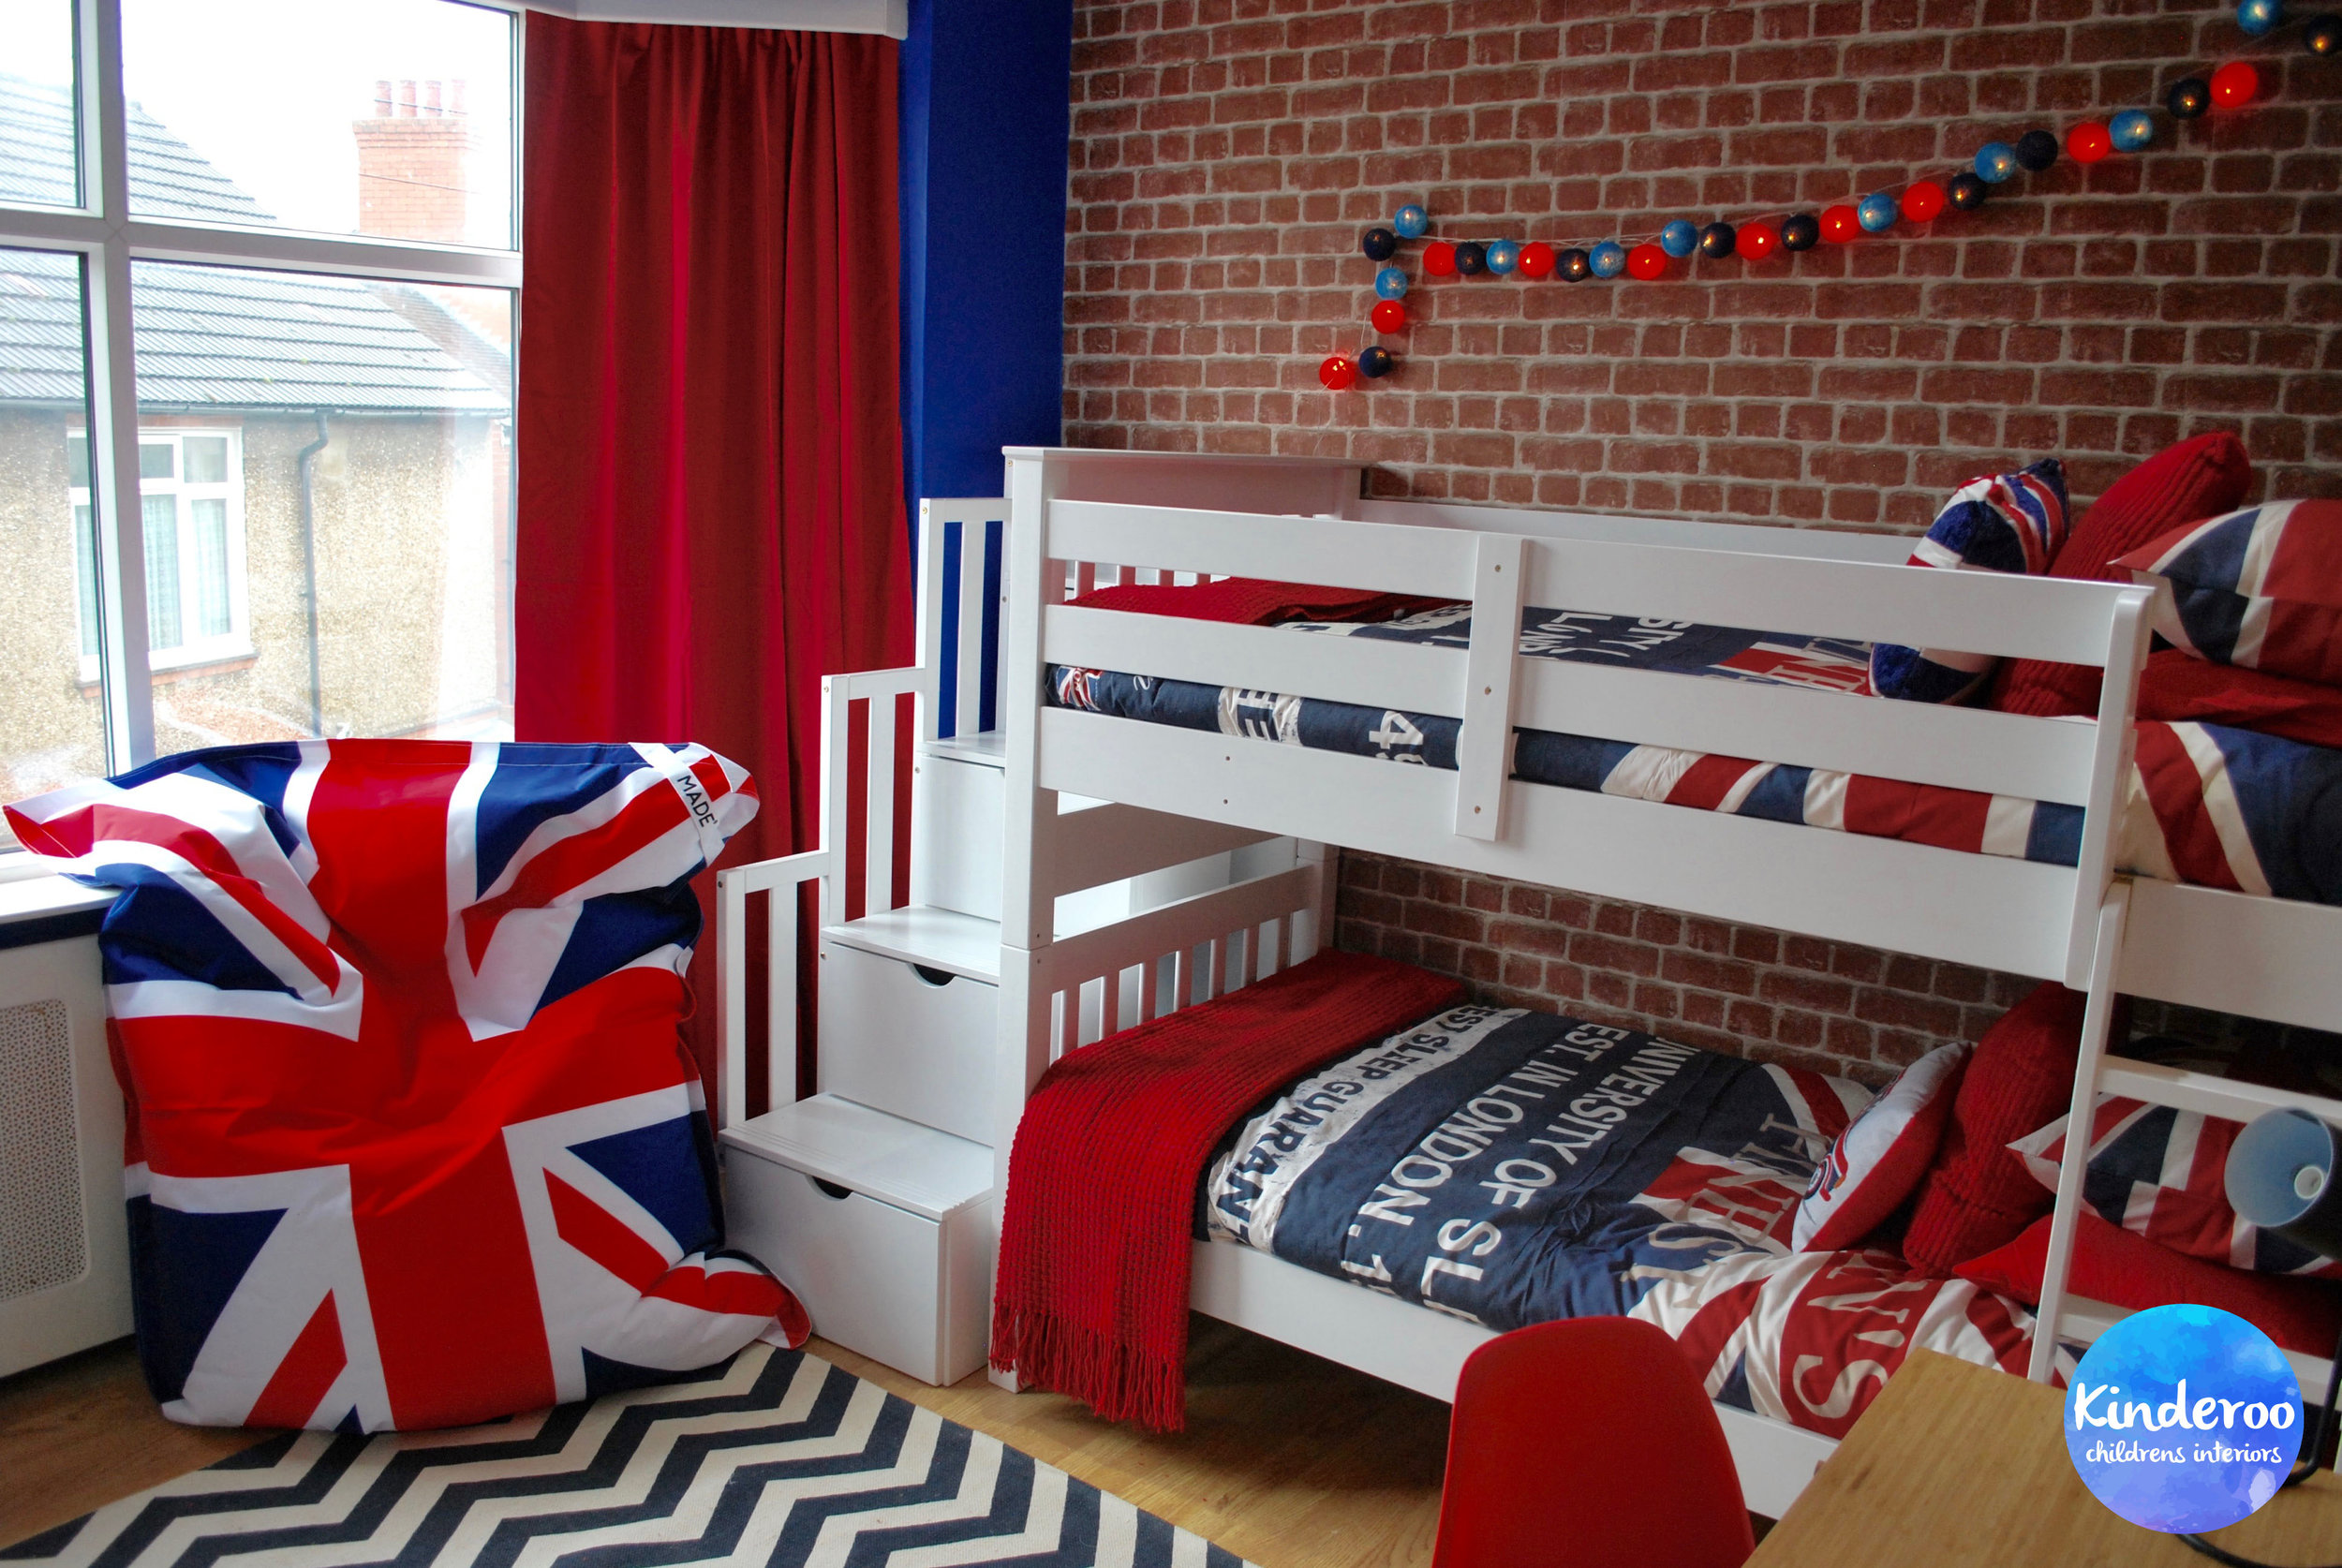 union jack british teen bedroom makeover by kinderoo childrens interiors for make a wish uk 1